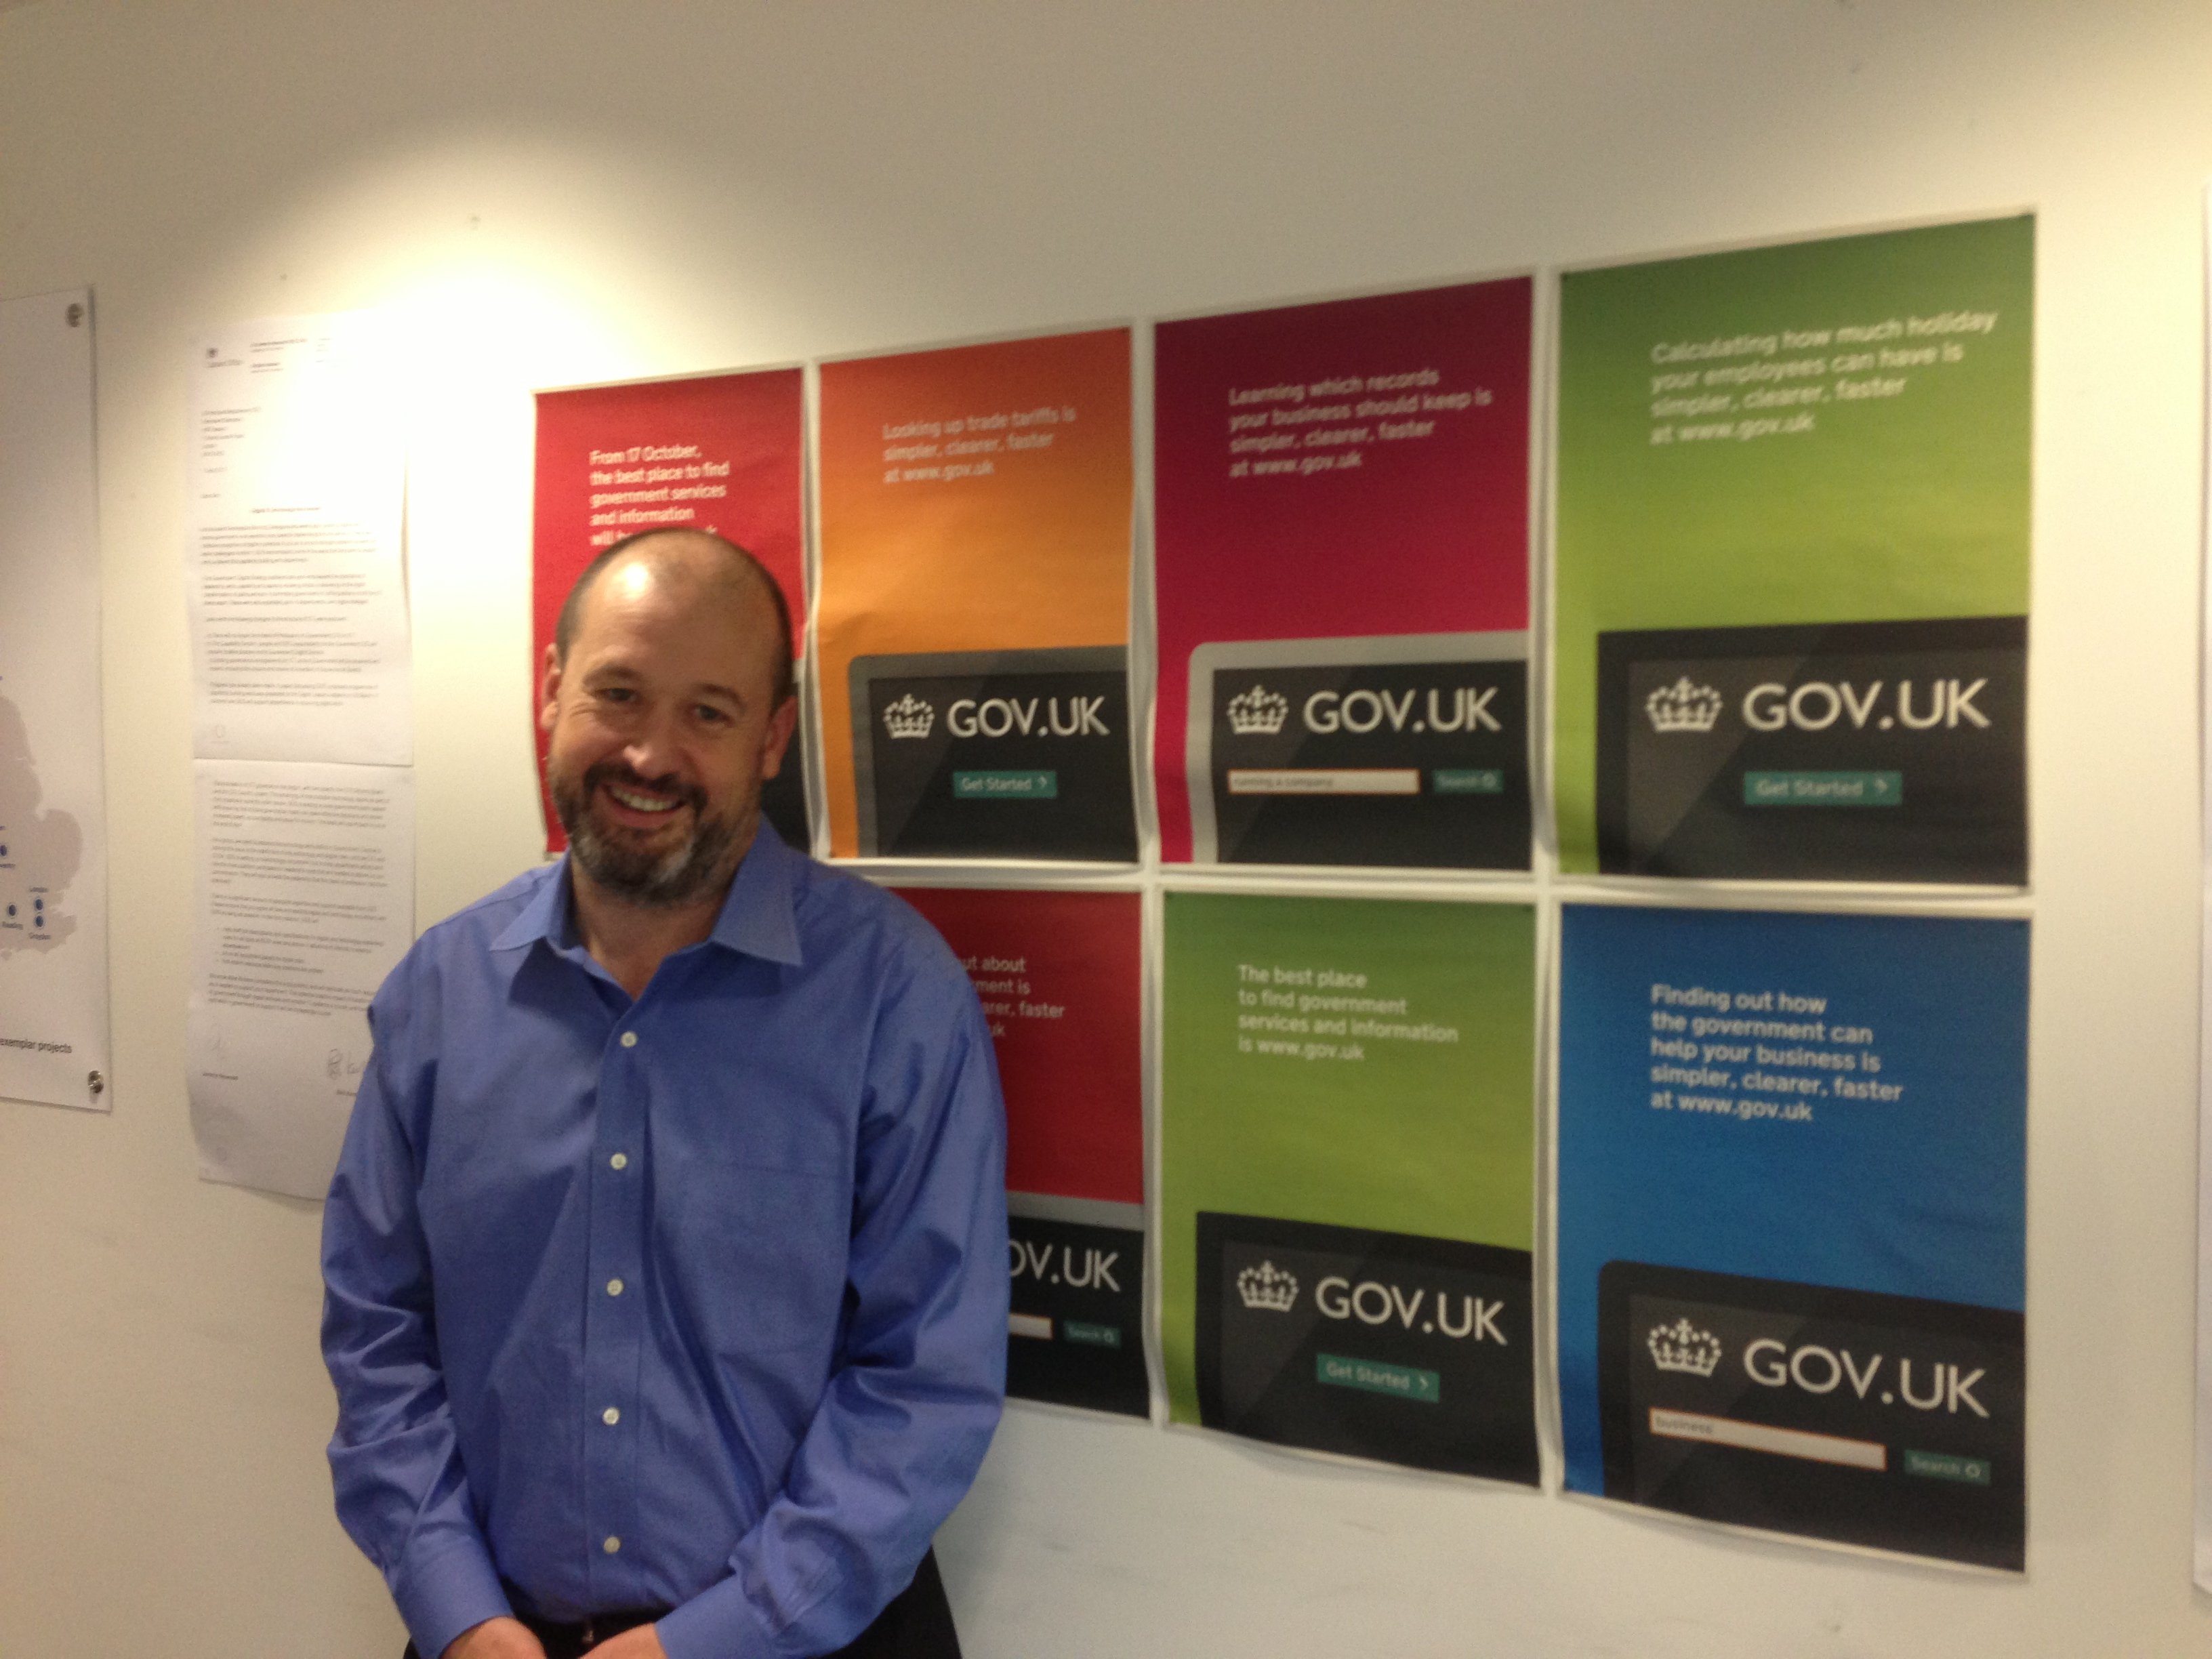 UK's first chief data officer to focus on making data a public asset